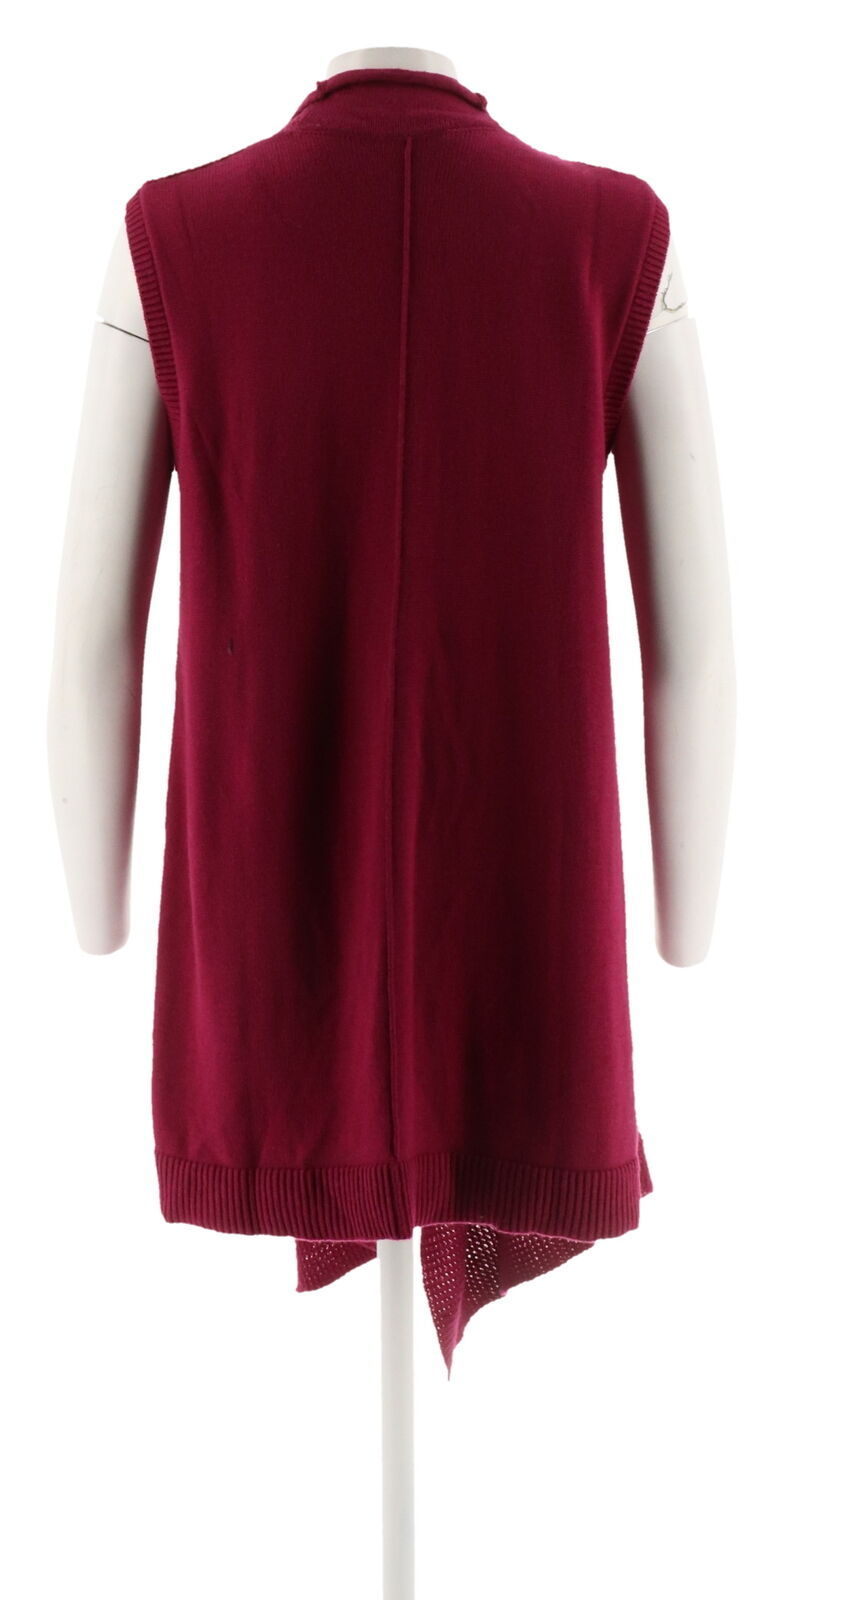 Halston Waffle Stitch Cascade Collar Sweater Vest Dark Raspberry M NEW A272363 image 3